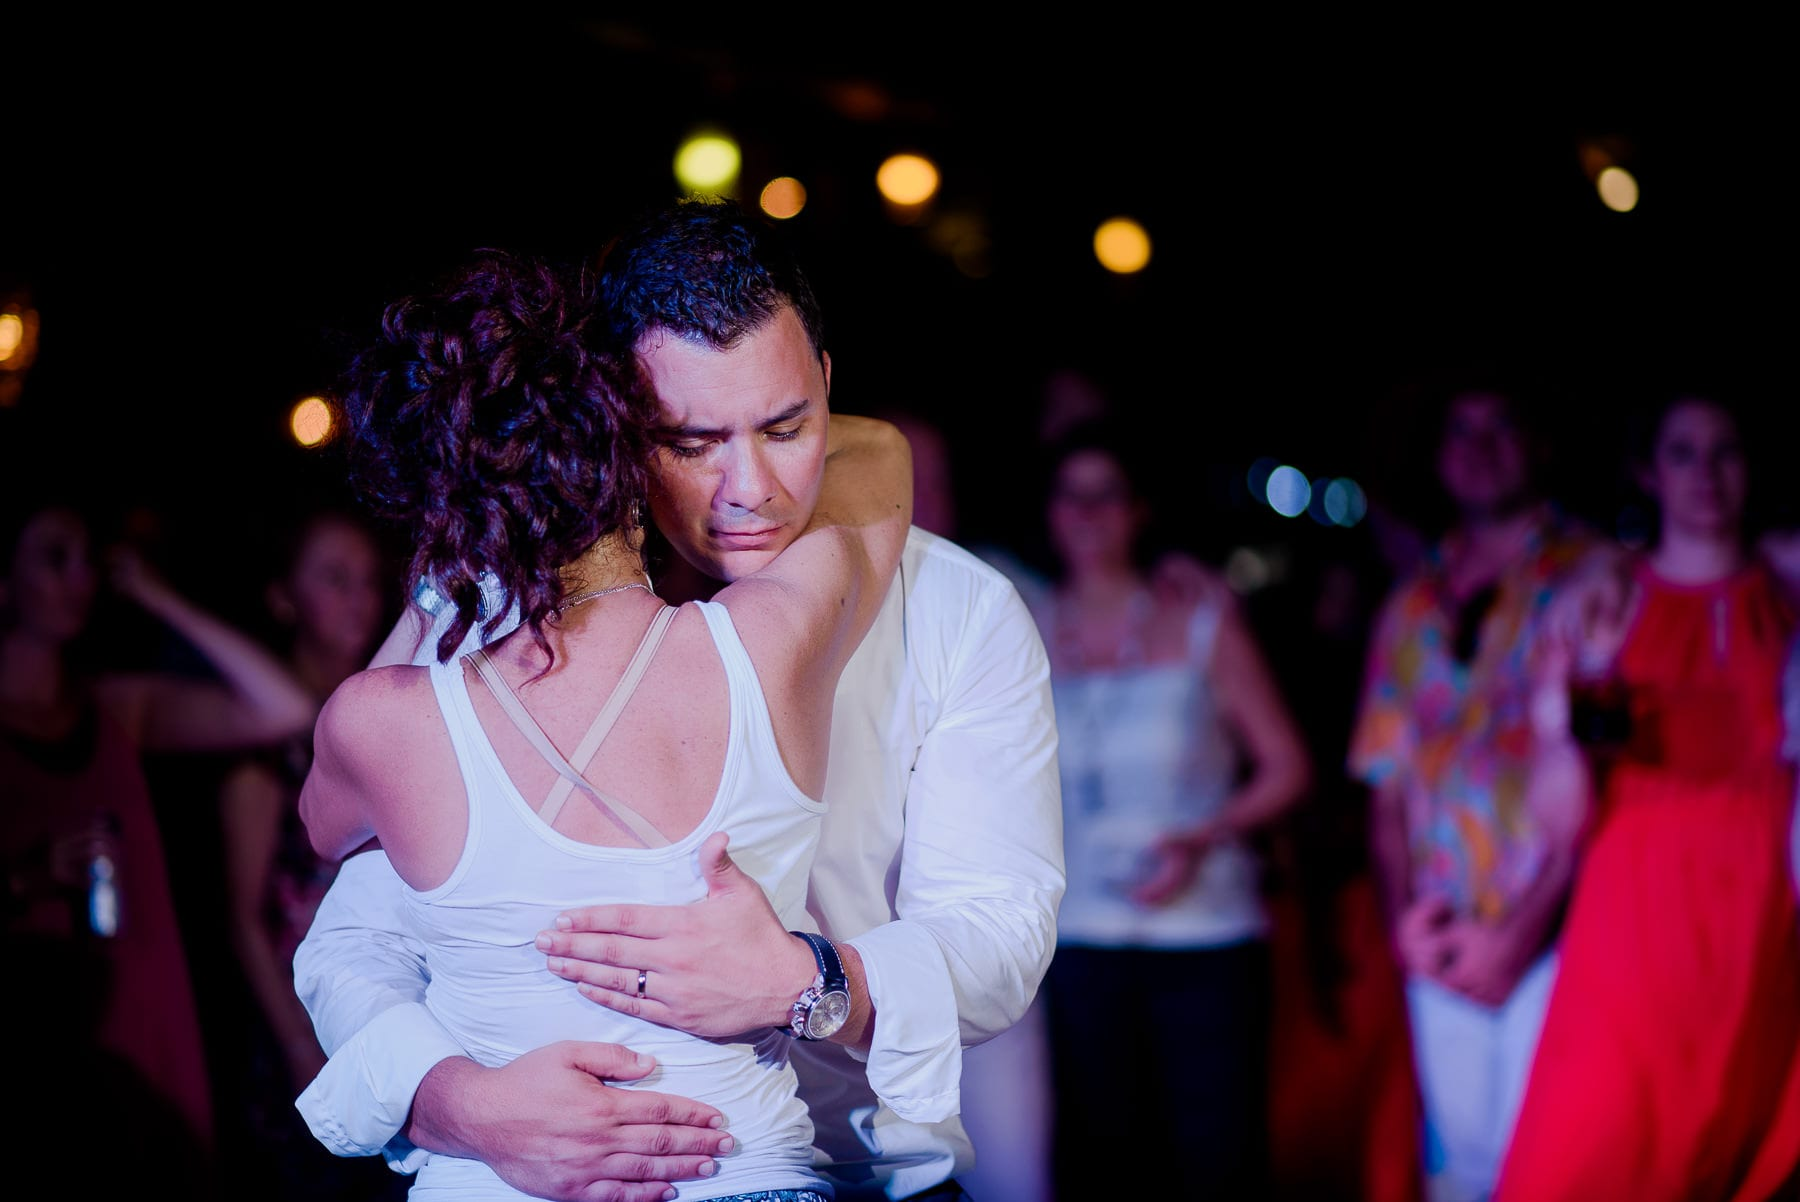 tulum-wedding-photographer-83